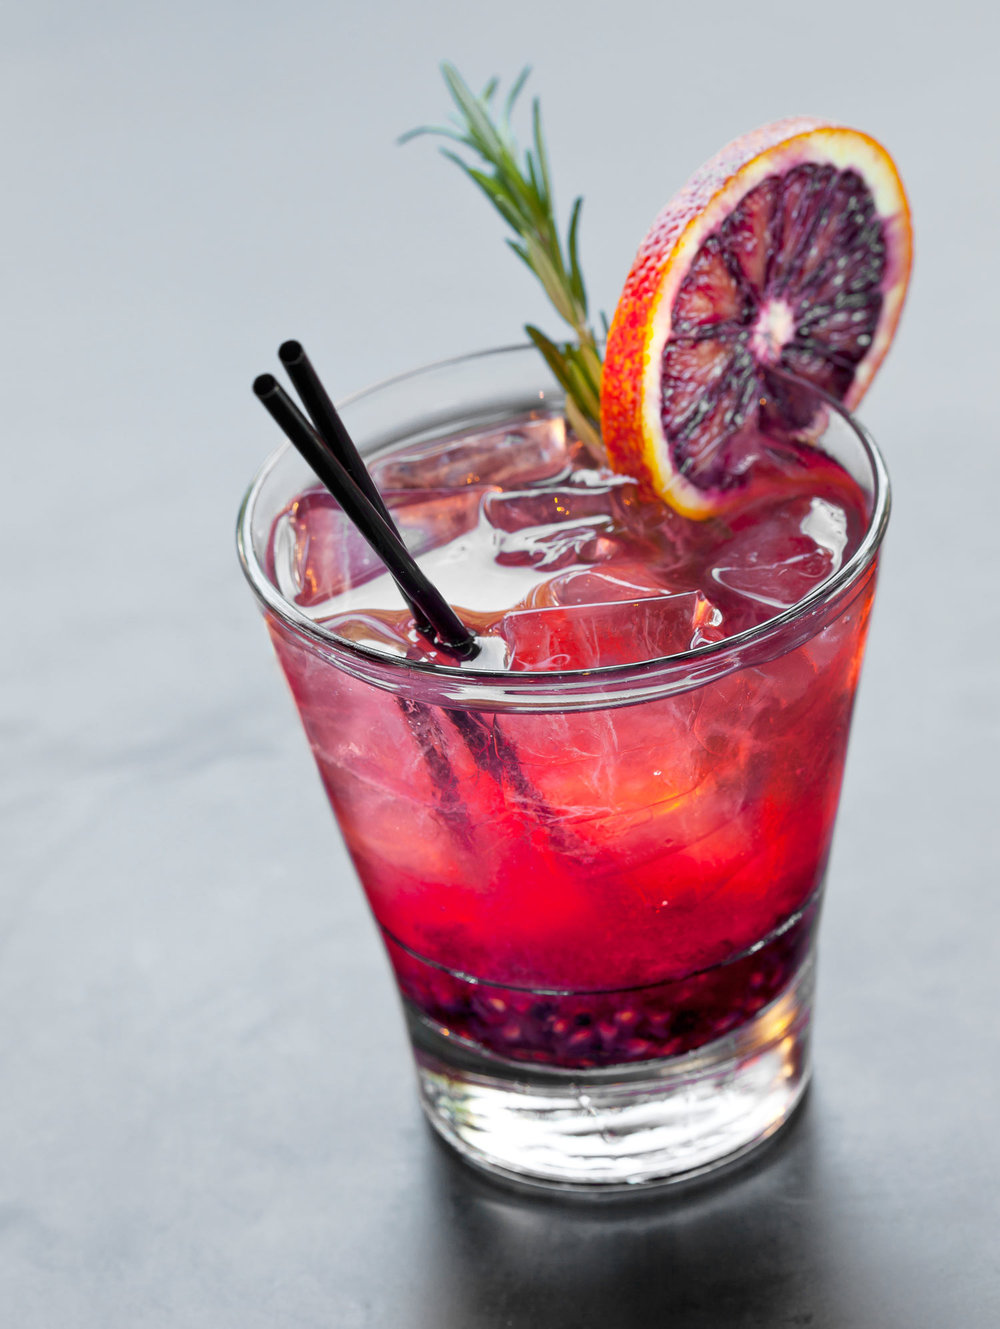 Food_photography_Craft_Cocktail_Red_Blood_Orange_mixed_drink.jpg